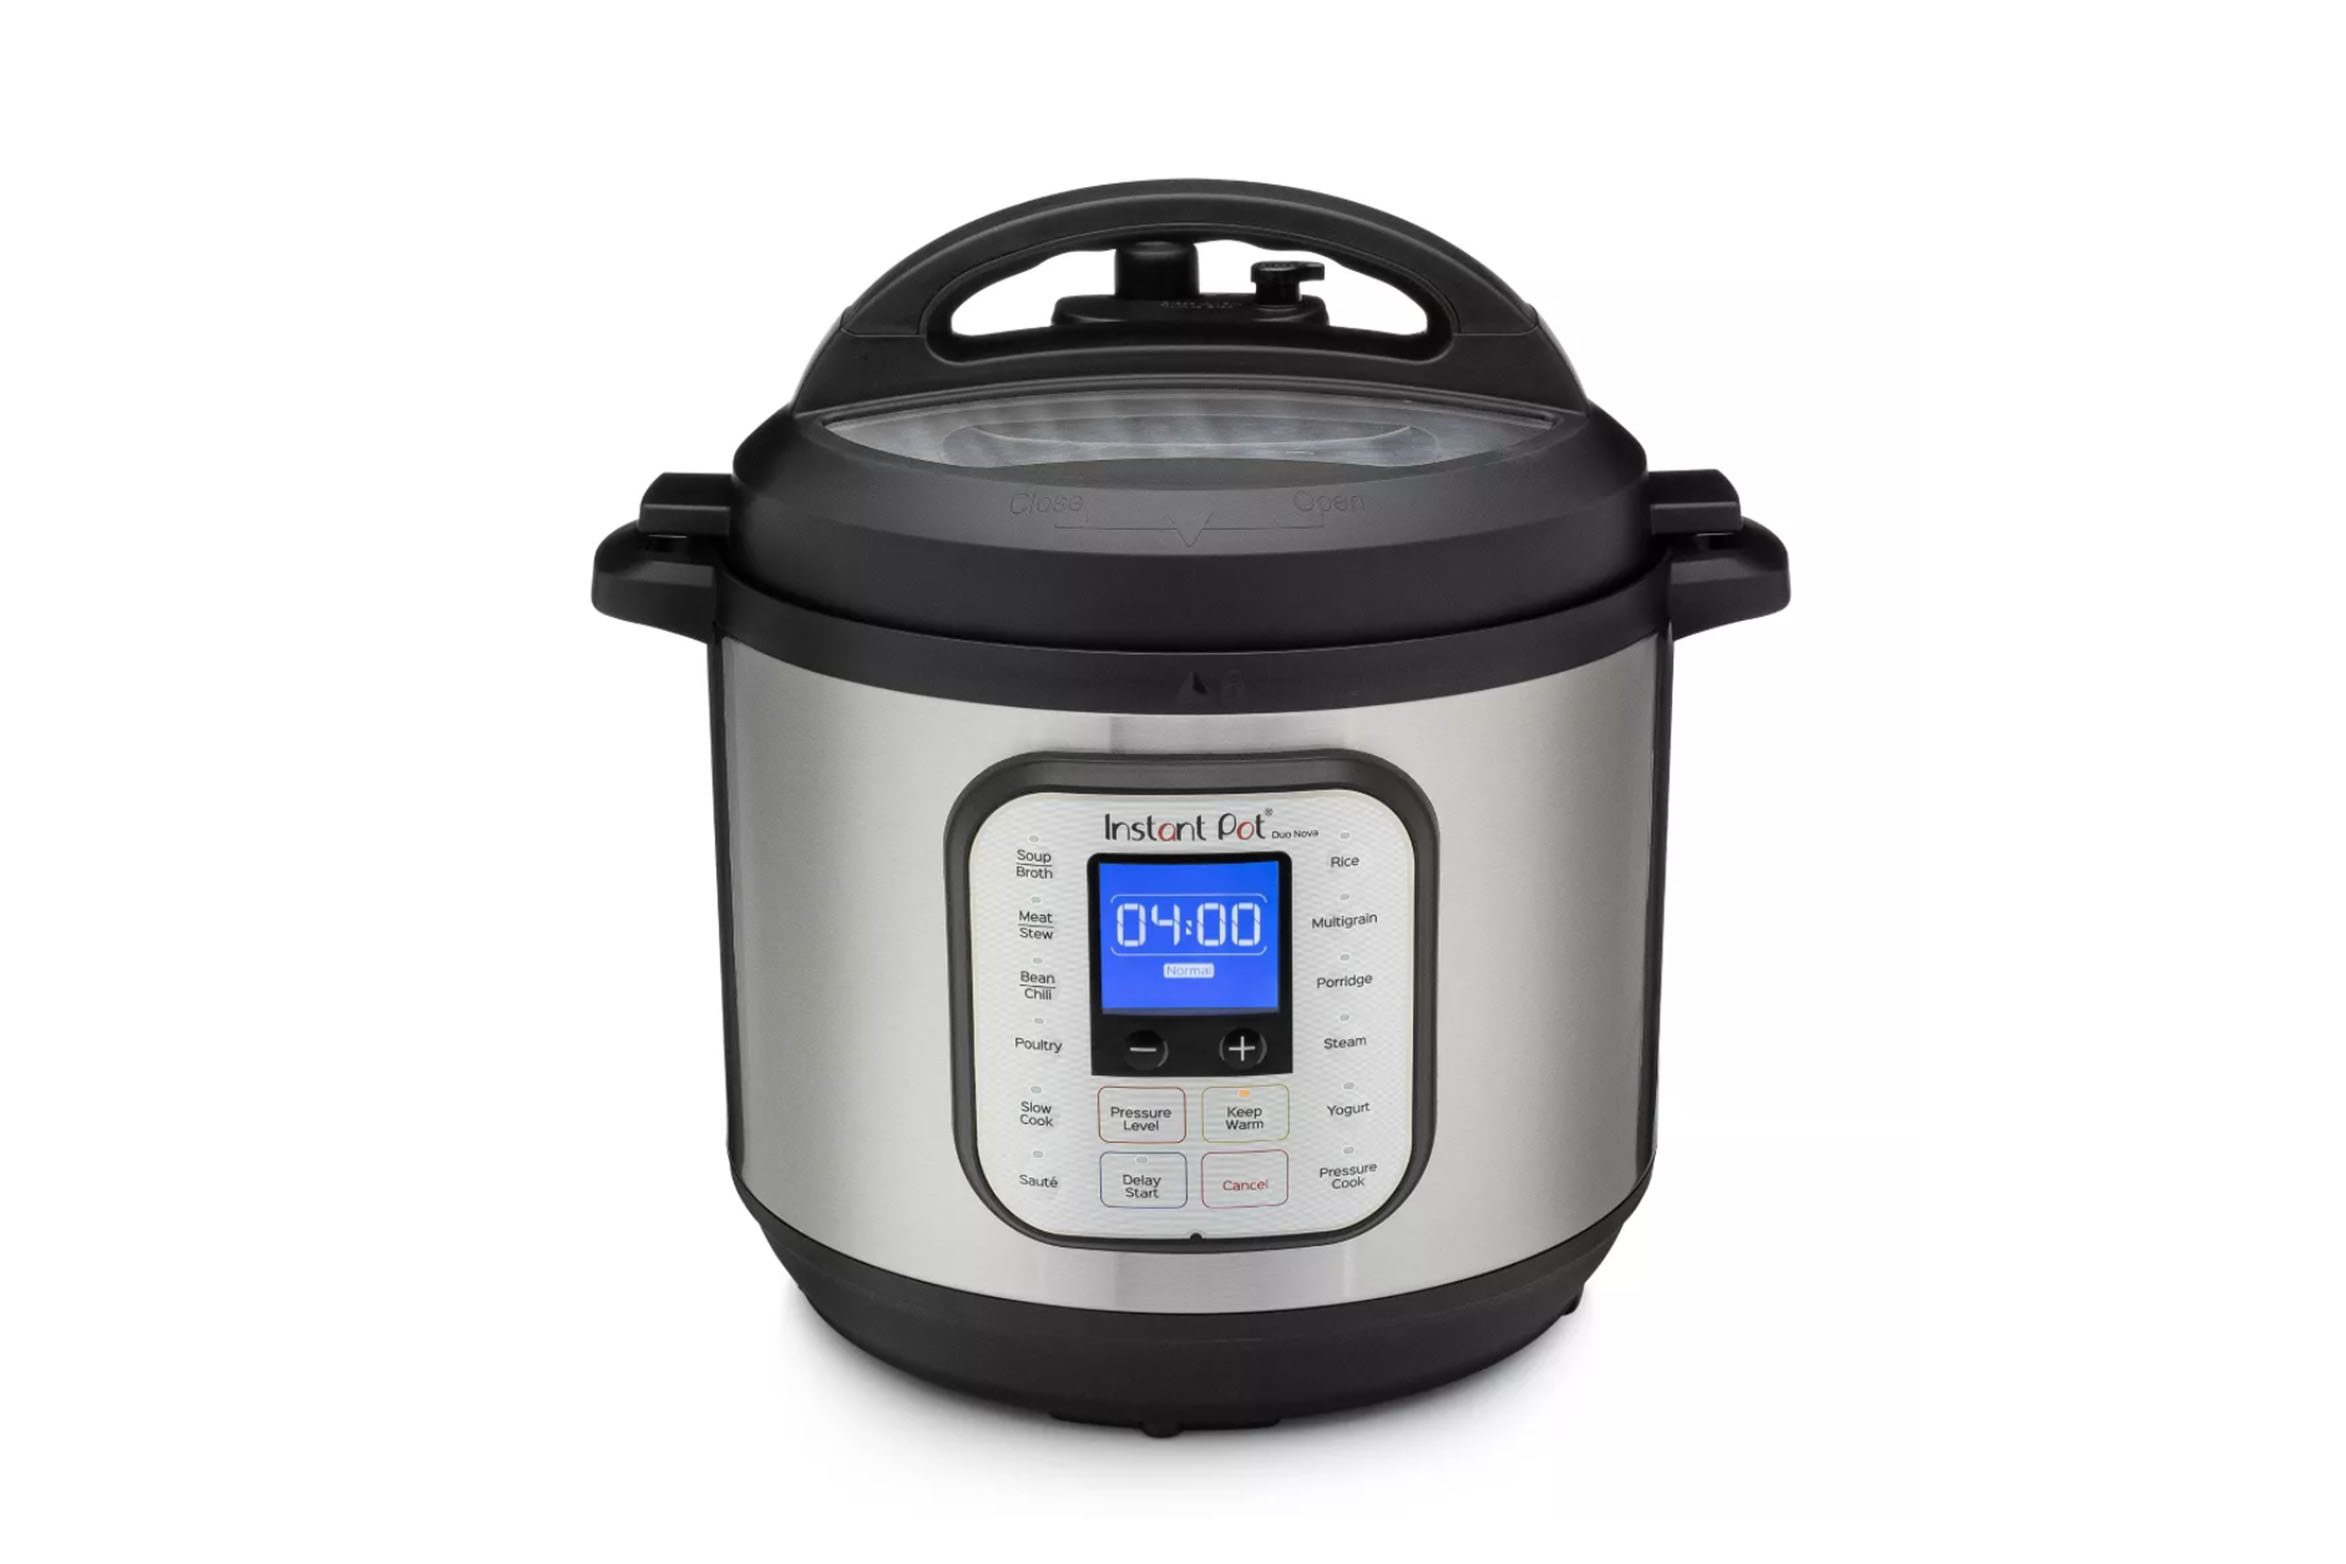 Instant Pot Duo Nova 8qt 7-in-1 One-Touch Multi-Use Programmable Electric Pressure Cooker with New Easy Seal Lid – Latest Model